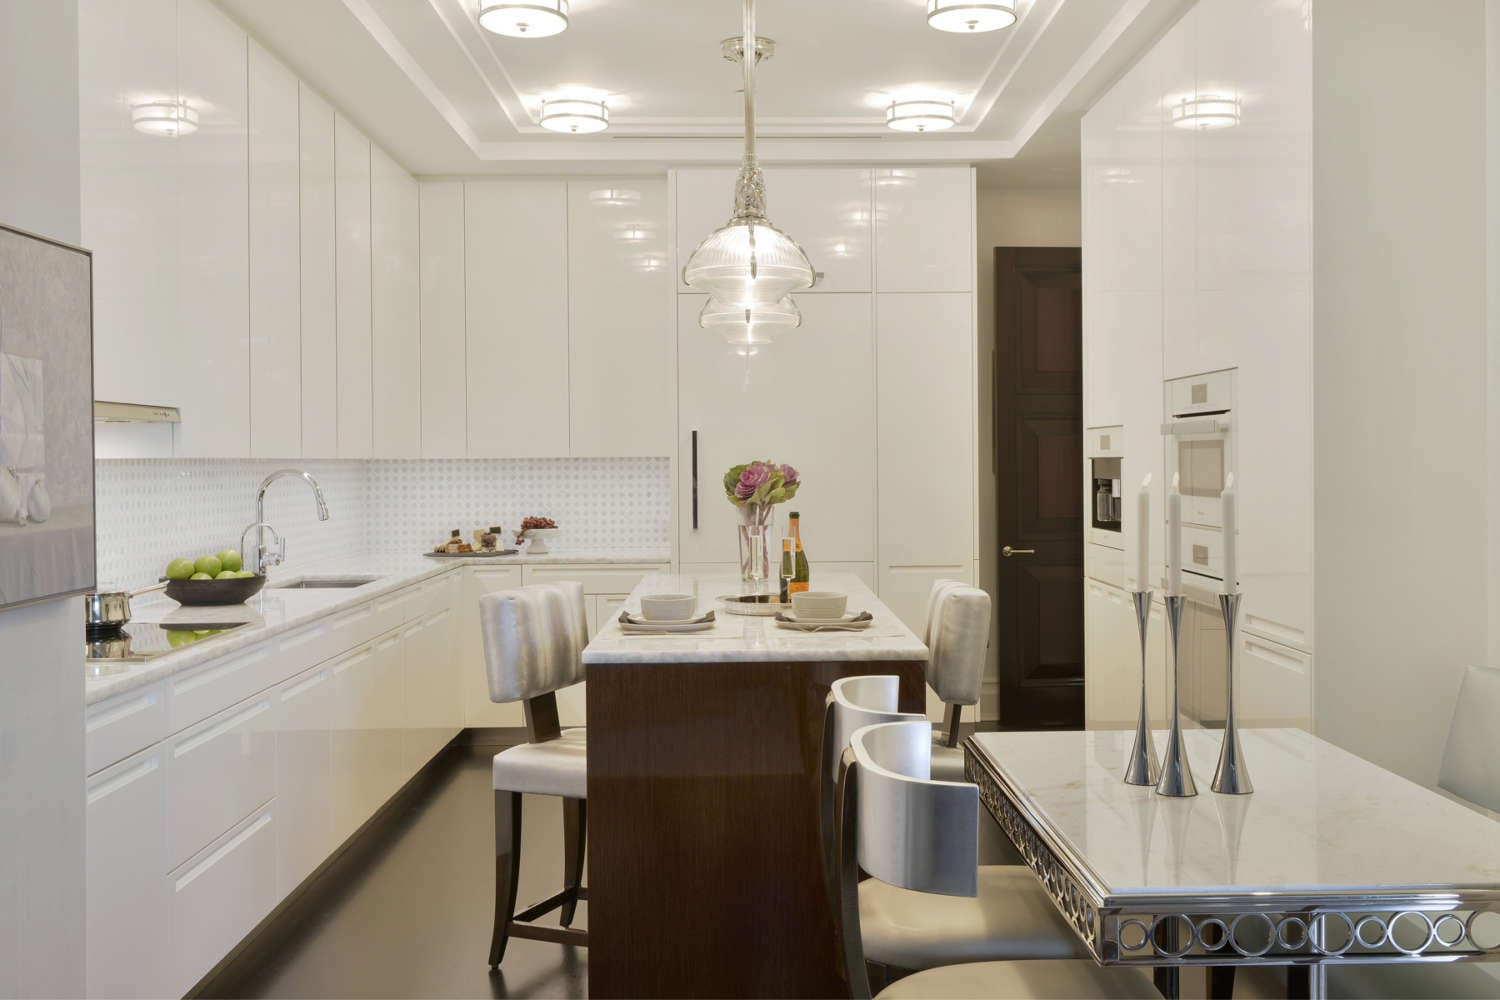 Contemporary kitchen features high gloss white, flat panel, frameless fully custom cabinets by Artcraft, built-in white appliances, integrated hardware and high gloss walnut island with seating. Design by Jeff Eakley of Bilotta Kitchens.